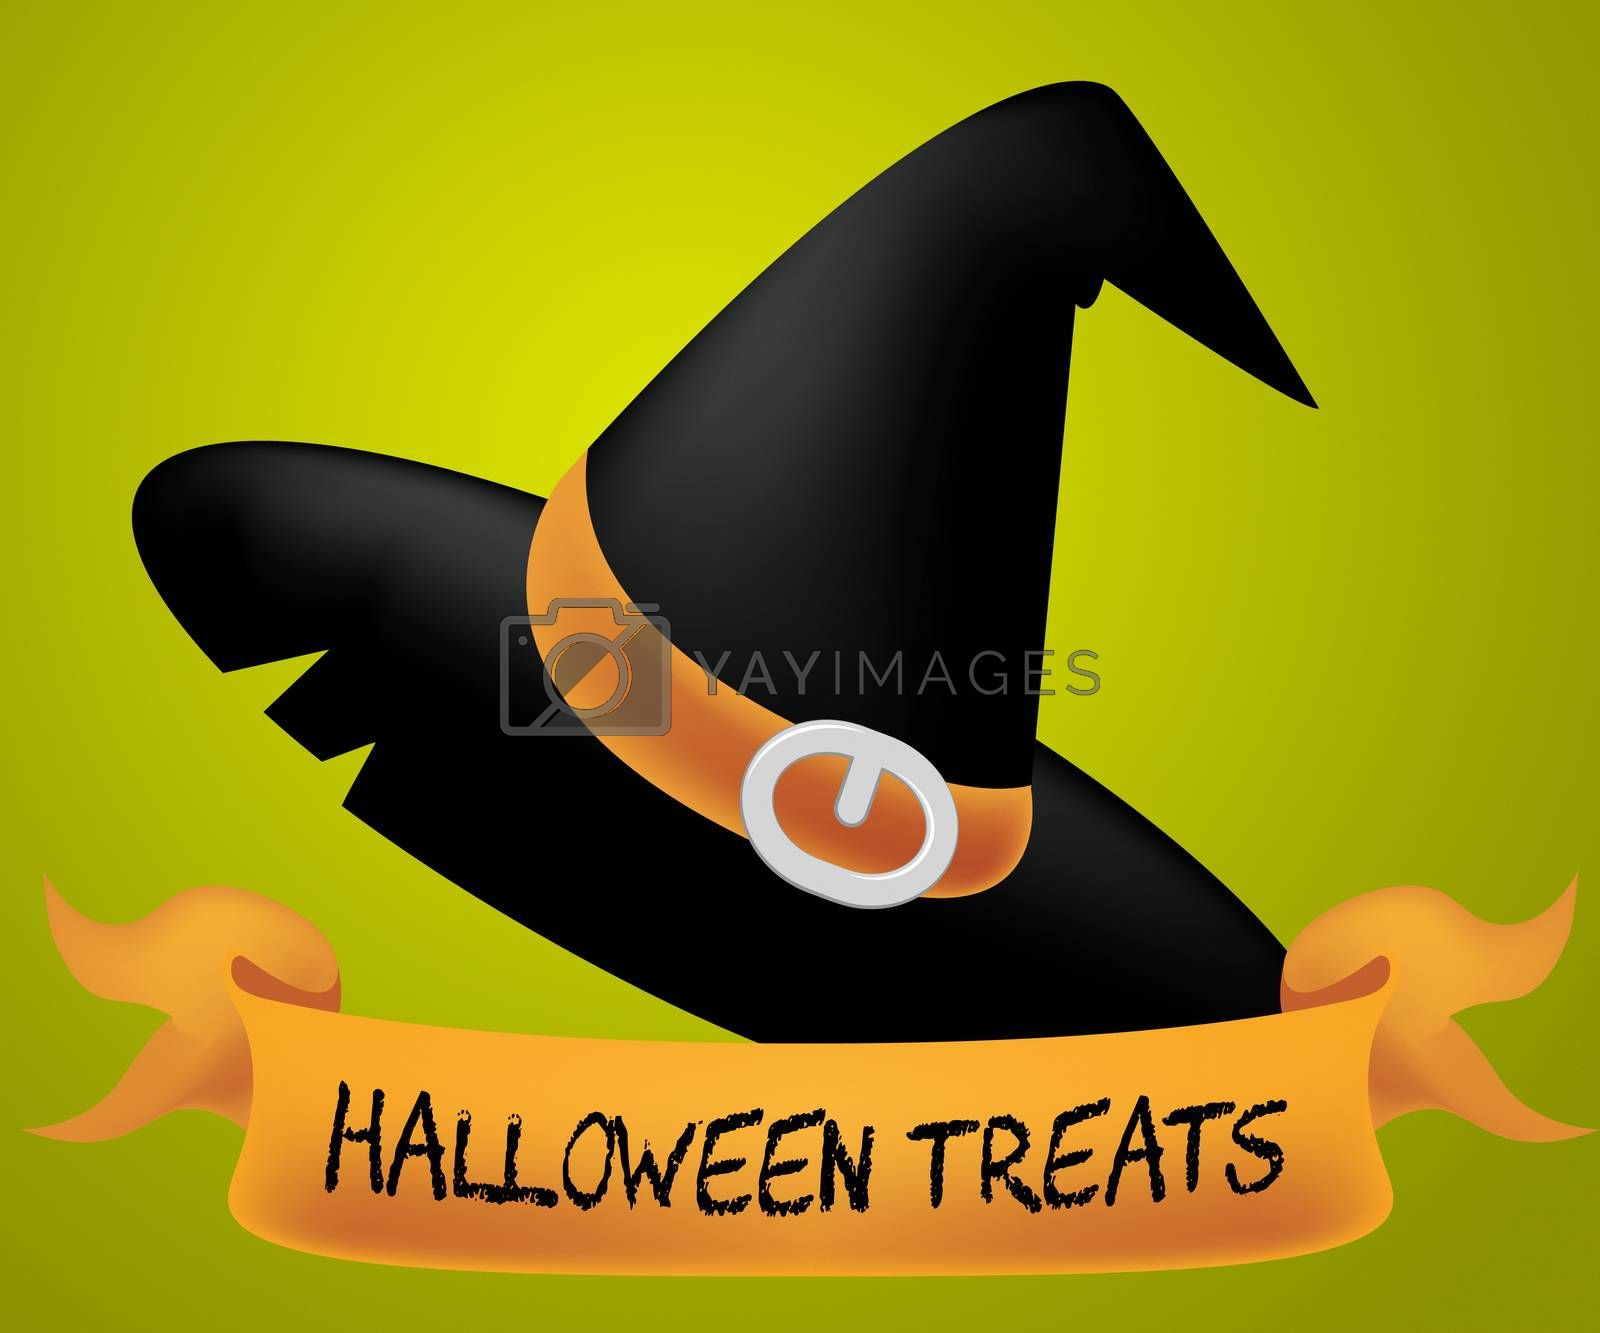 Halloween Treats Meaning Luxuries Celebration And Candy